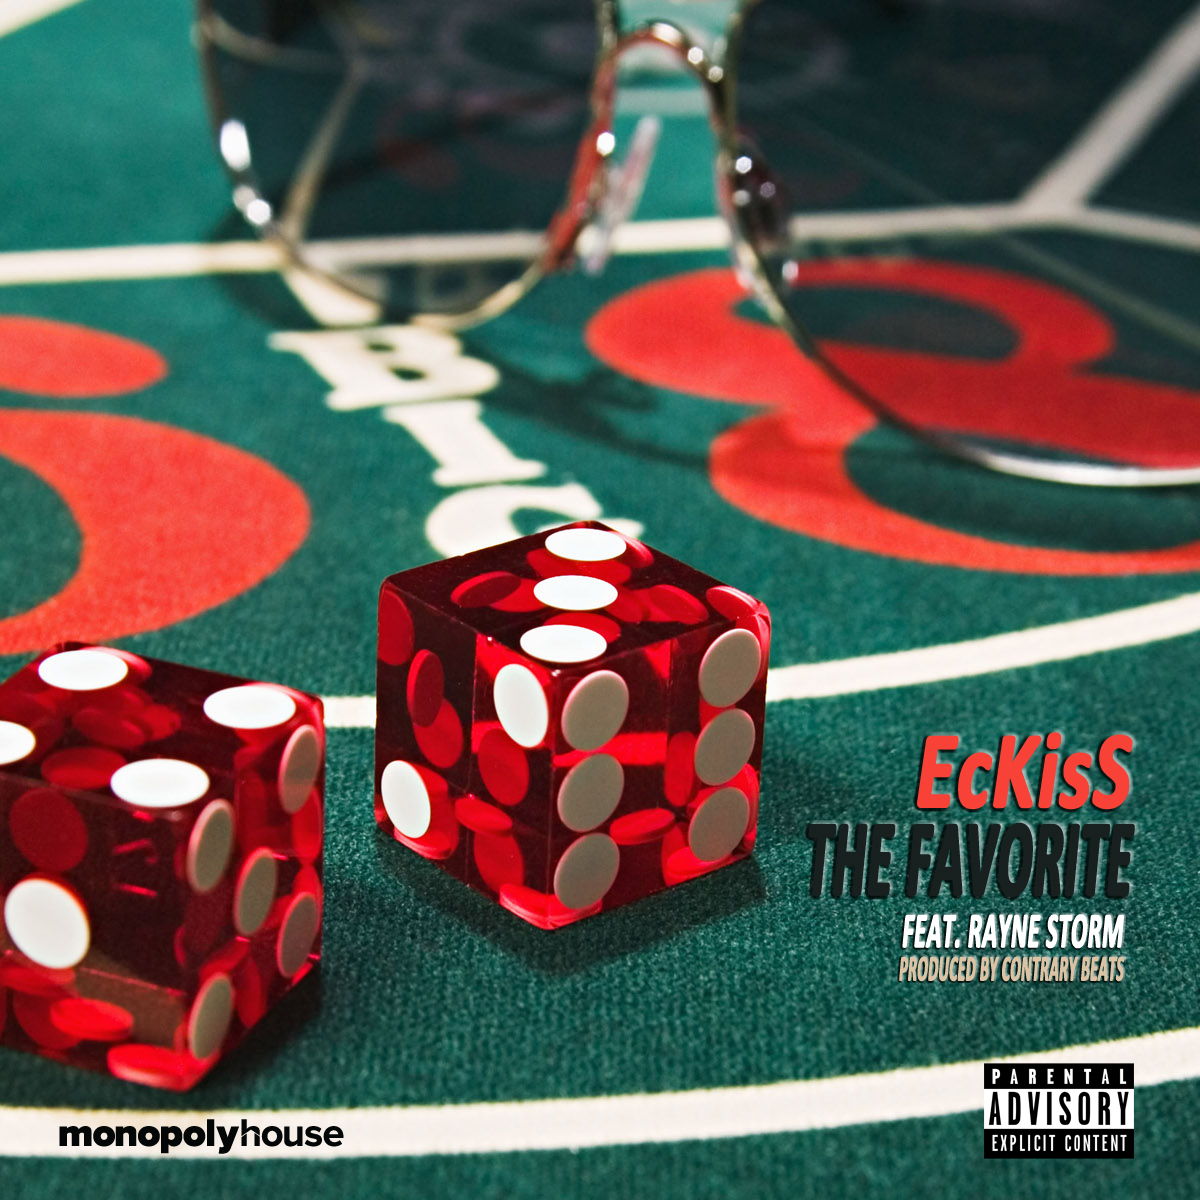 Eckiss - The Favorite ft. Rayne Storm (Prod. by Contrary Beats)